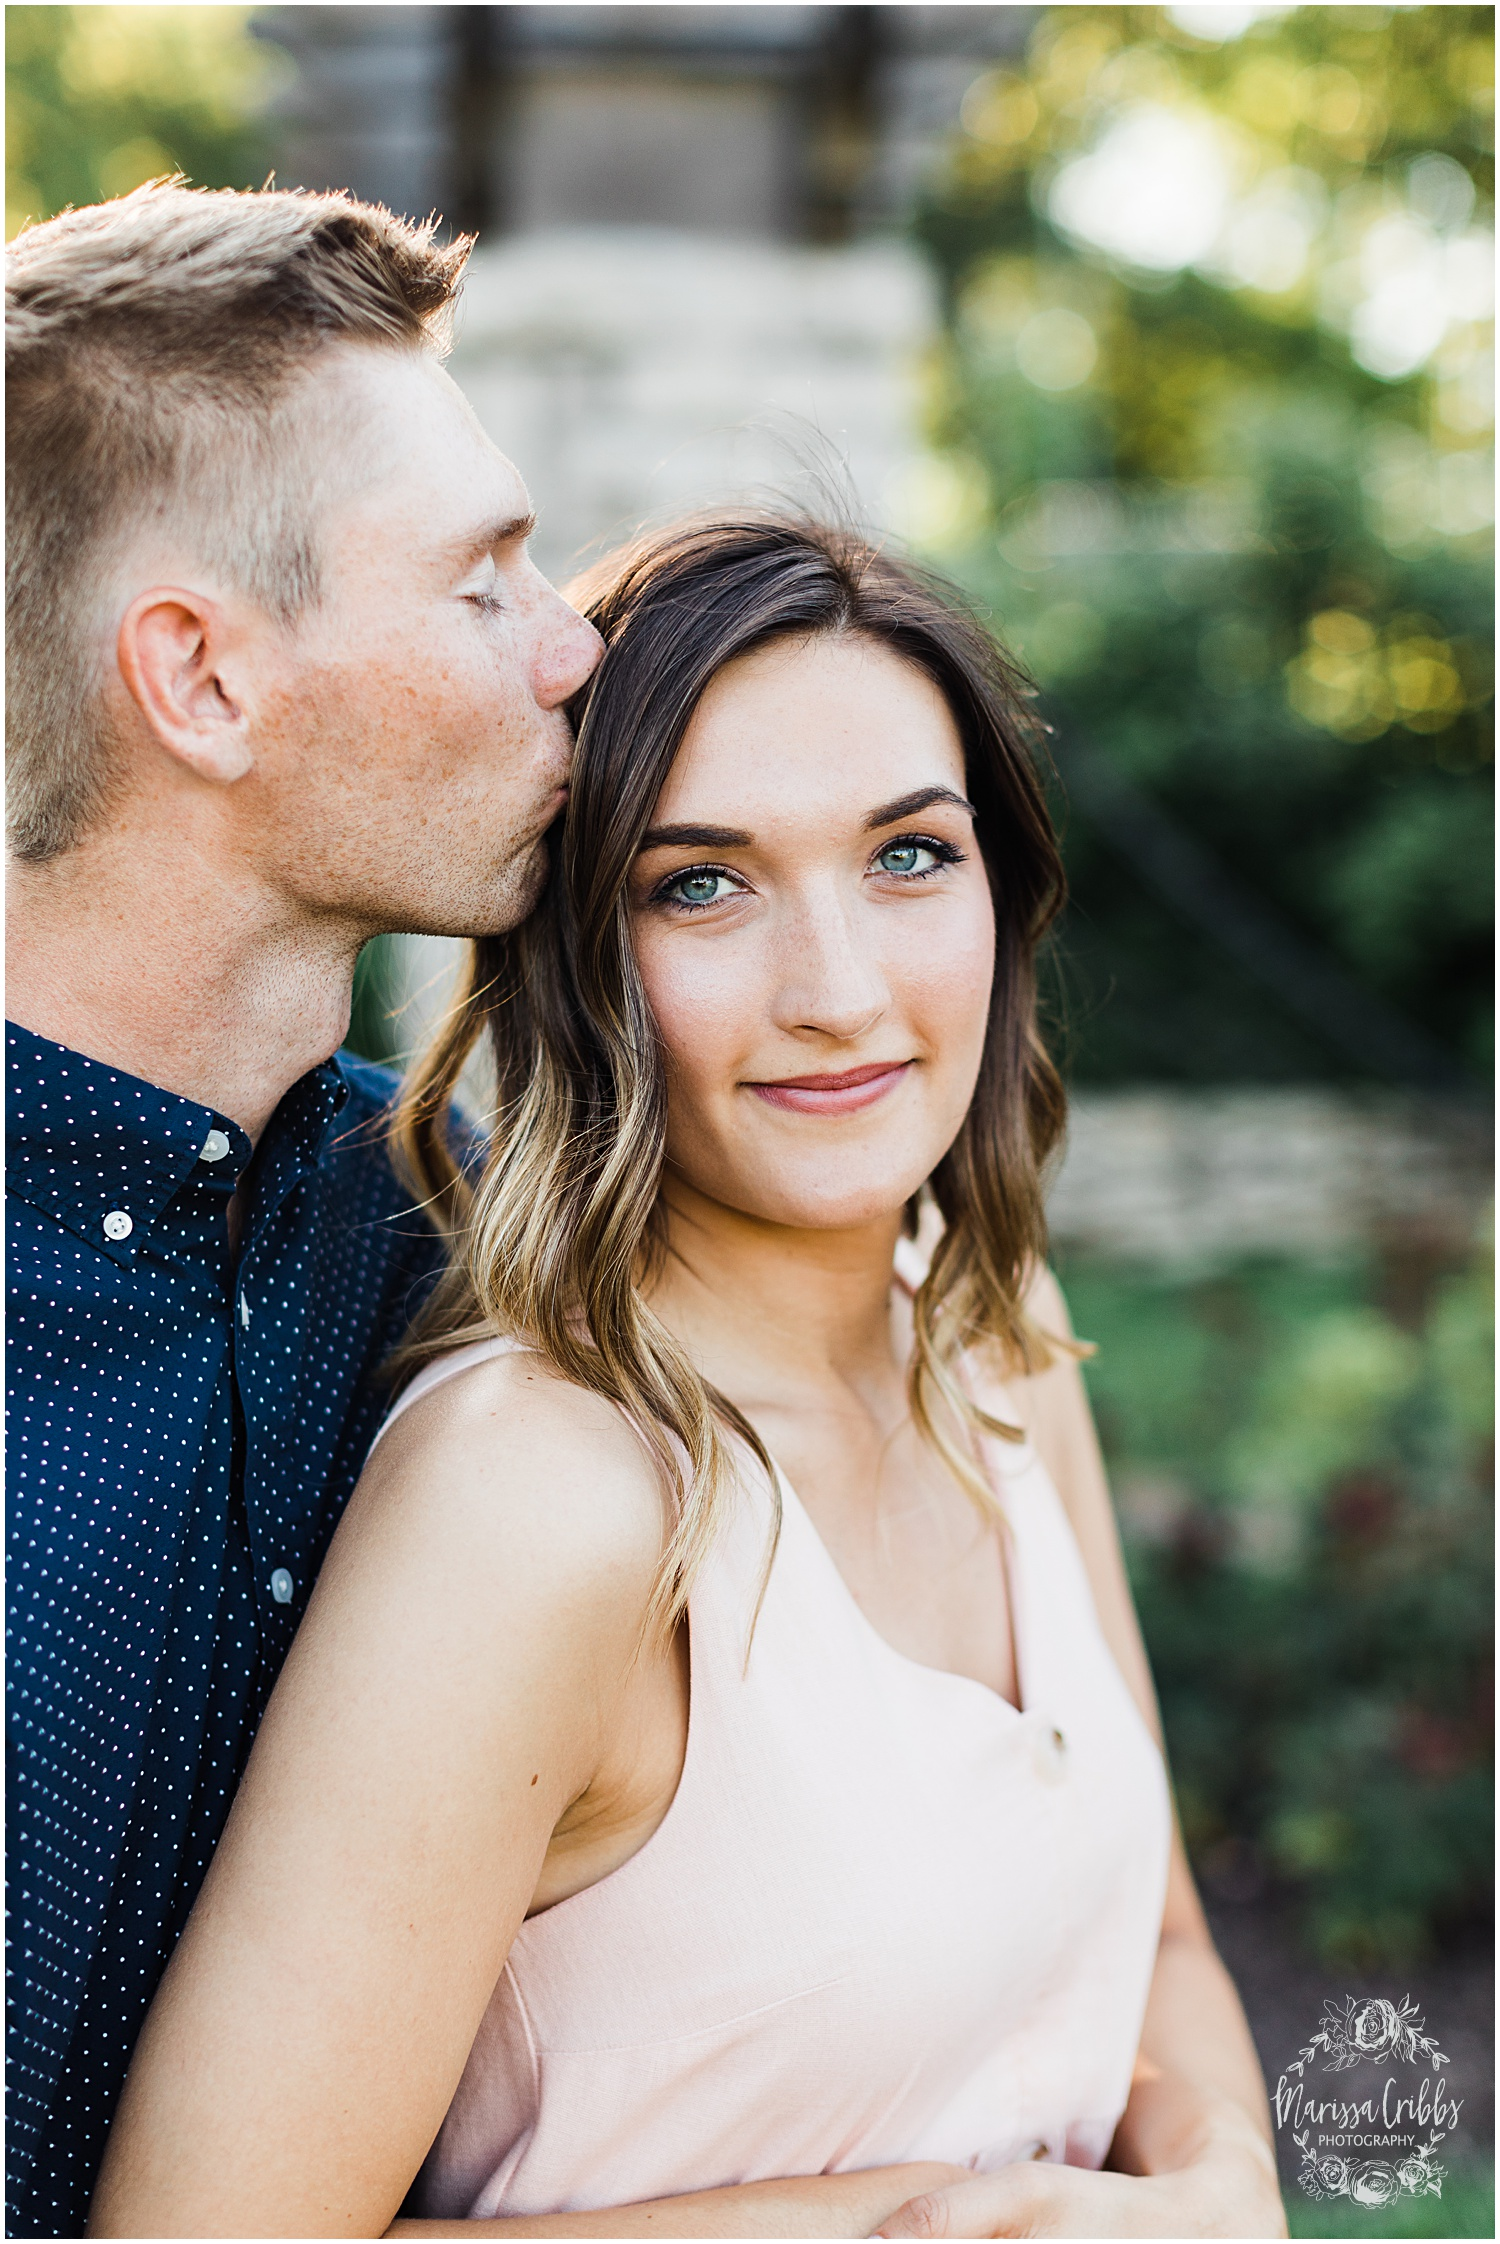 KELSEY & MICHAEL ENGAGEMENT BLOG | MARISSA CRIBBS PHOTOGRAPHY_8444.jpg